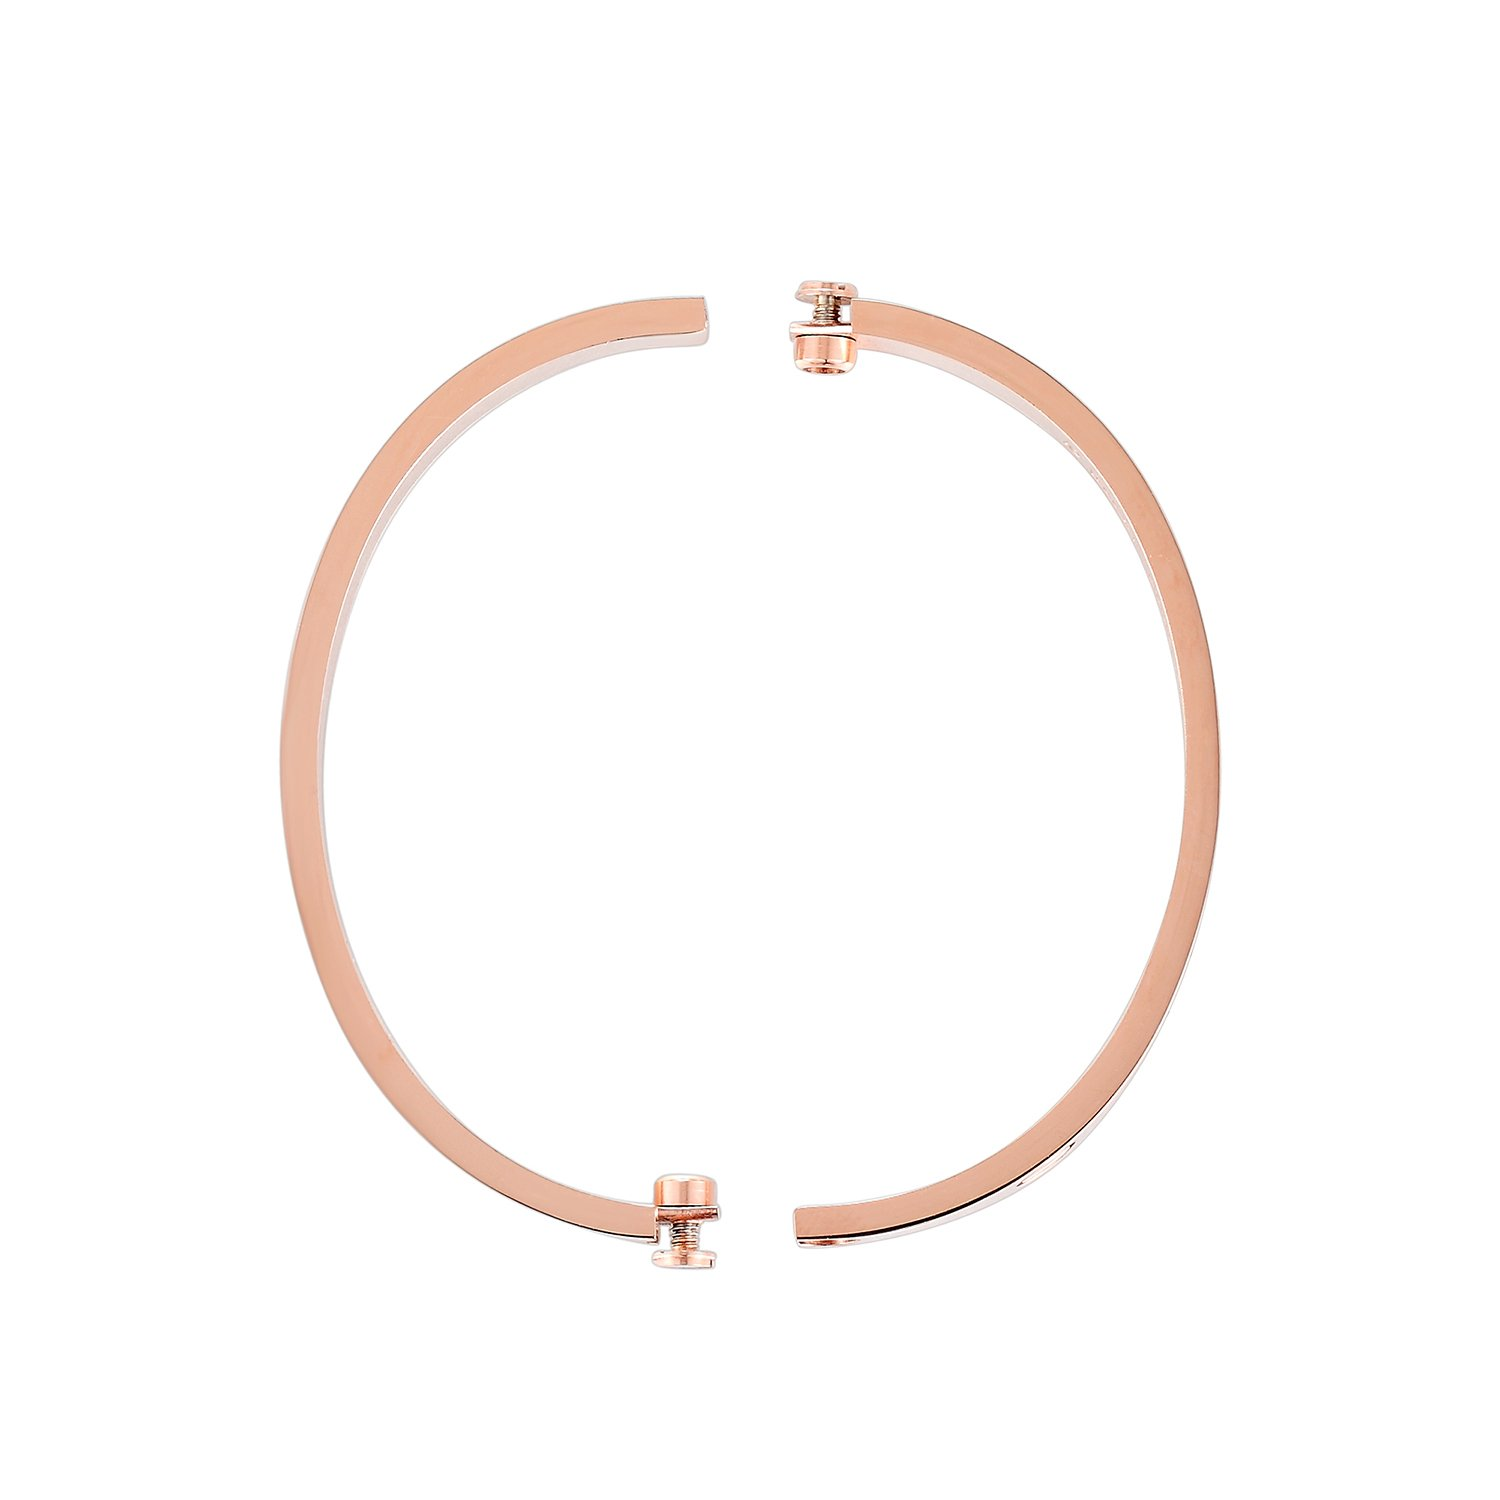 Z.RACLE Love Bangle Bracelet Stainless Steel with Screw - Best Gift for Love - 6.3IN Rose Gold CZ by Z.RACLE (Image #2)